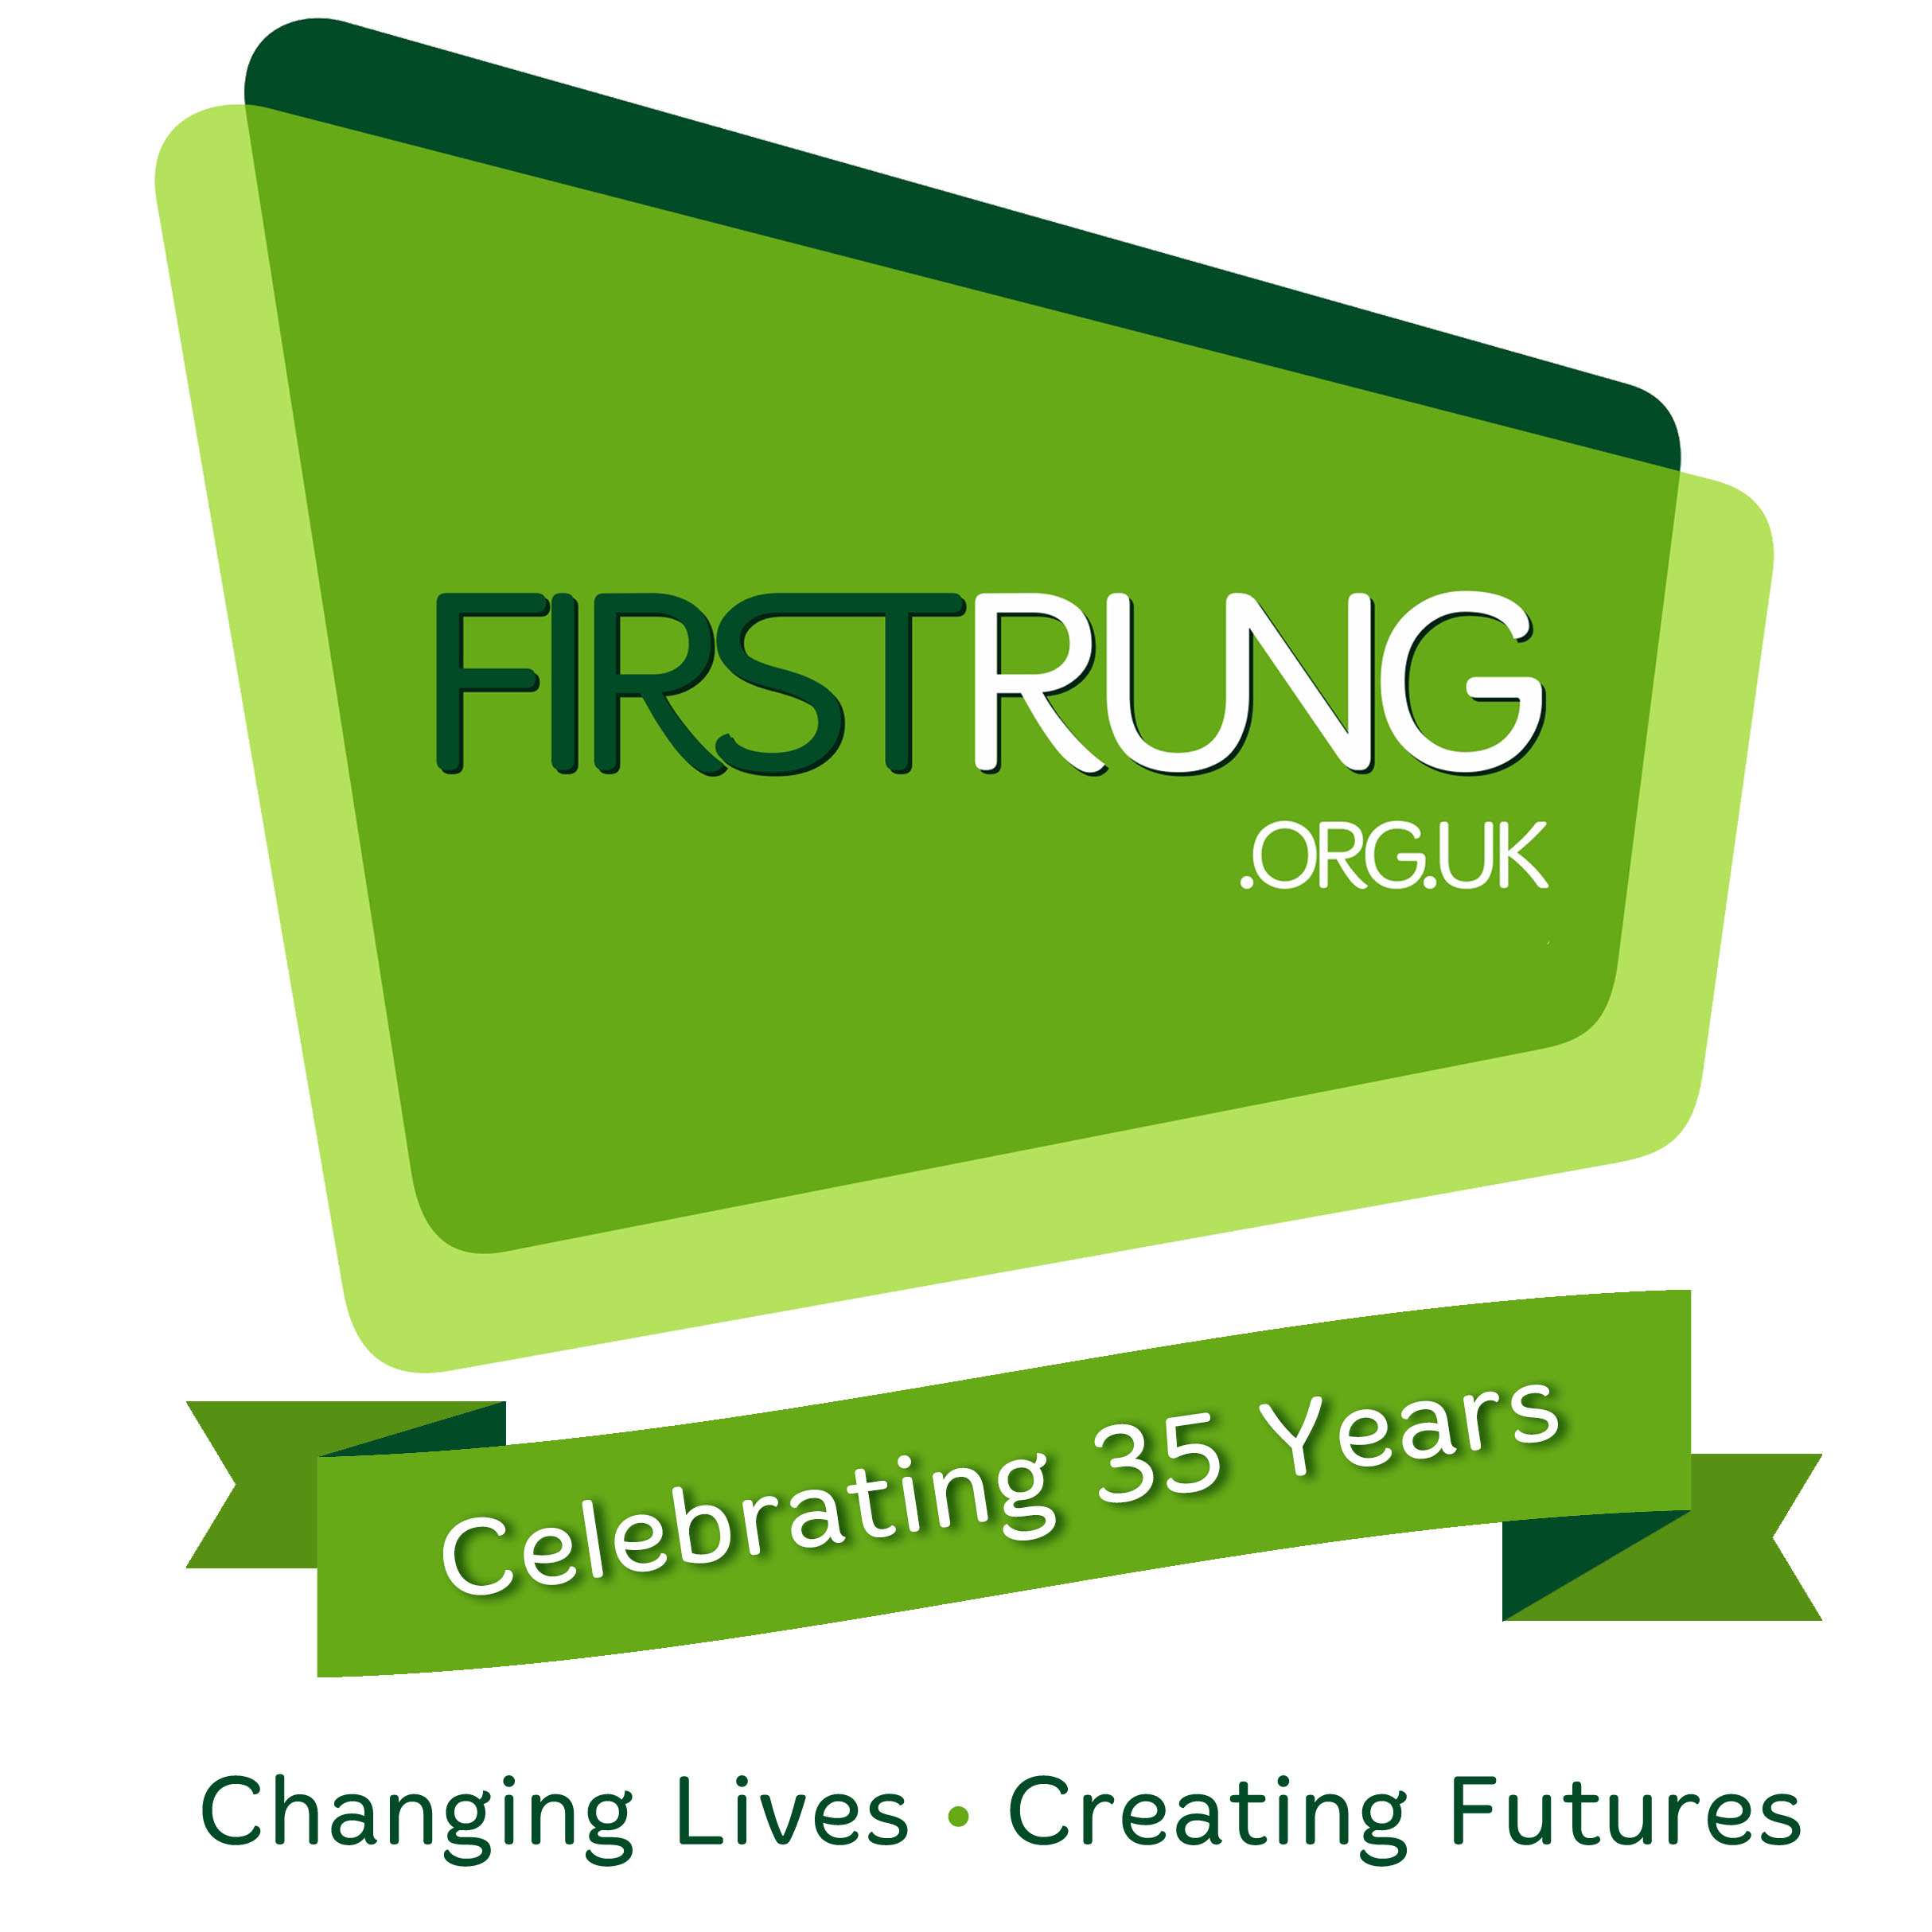 First Rung Ltd